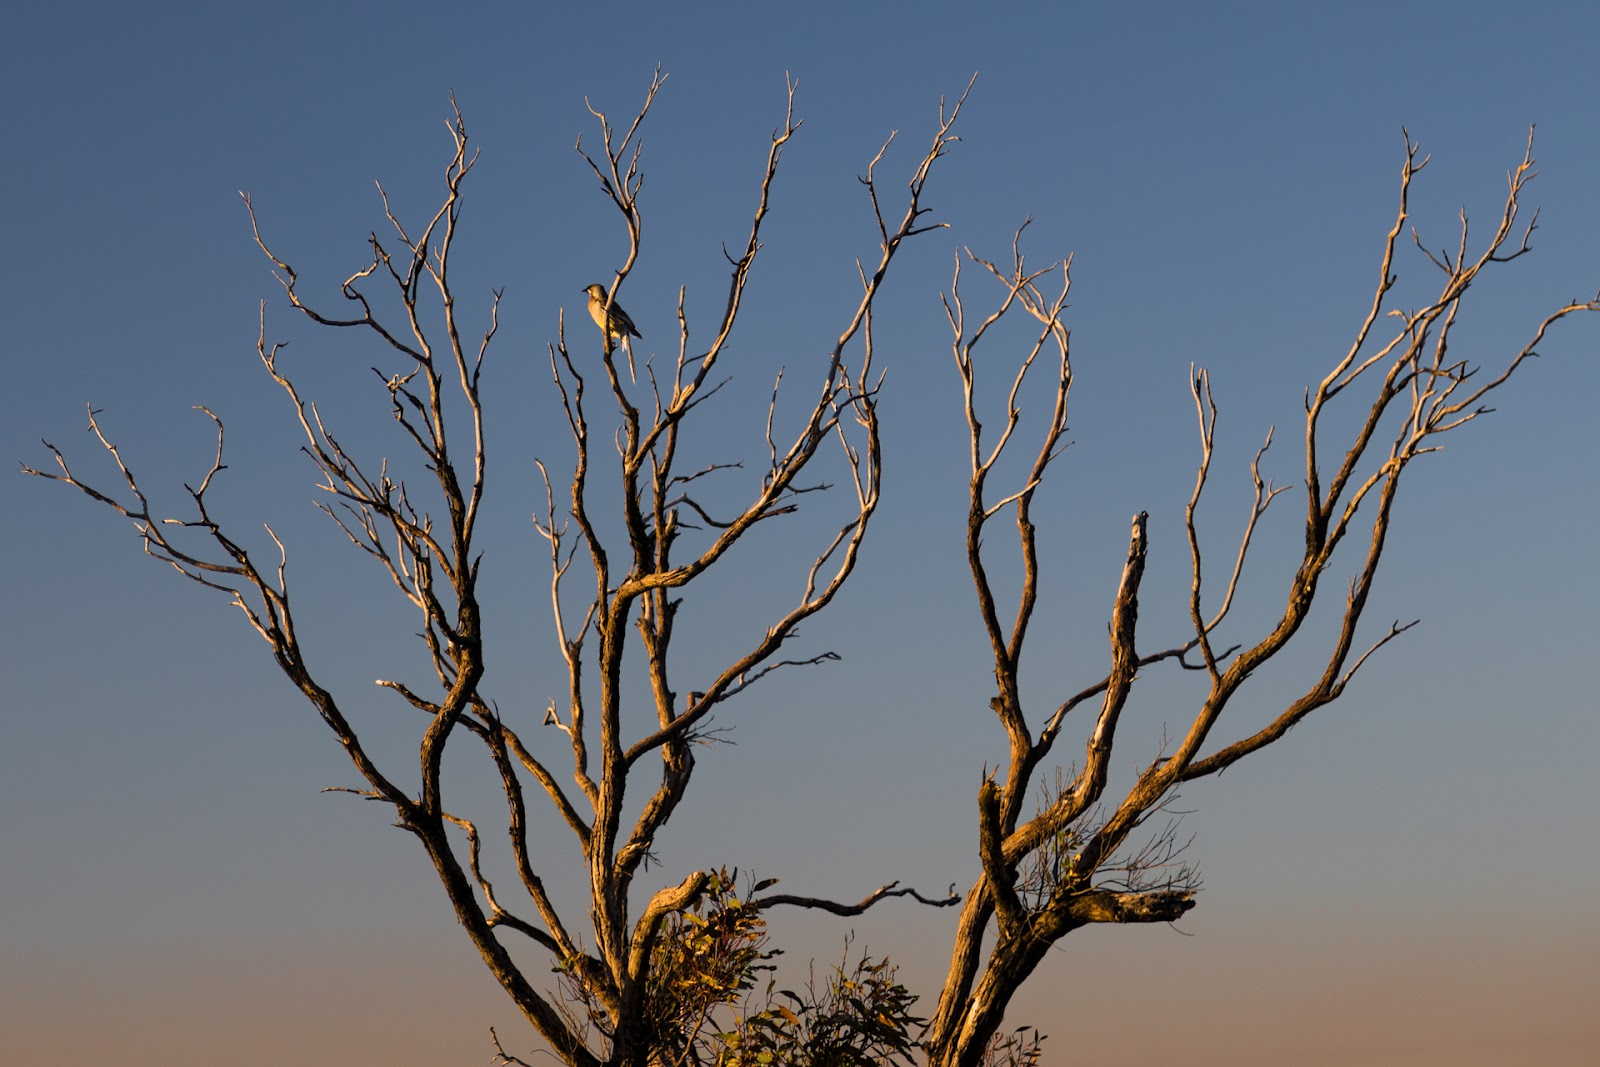 glow from setting sun on bird in tree